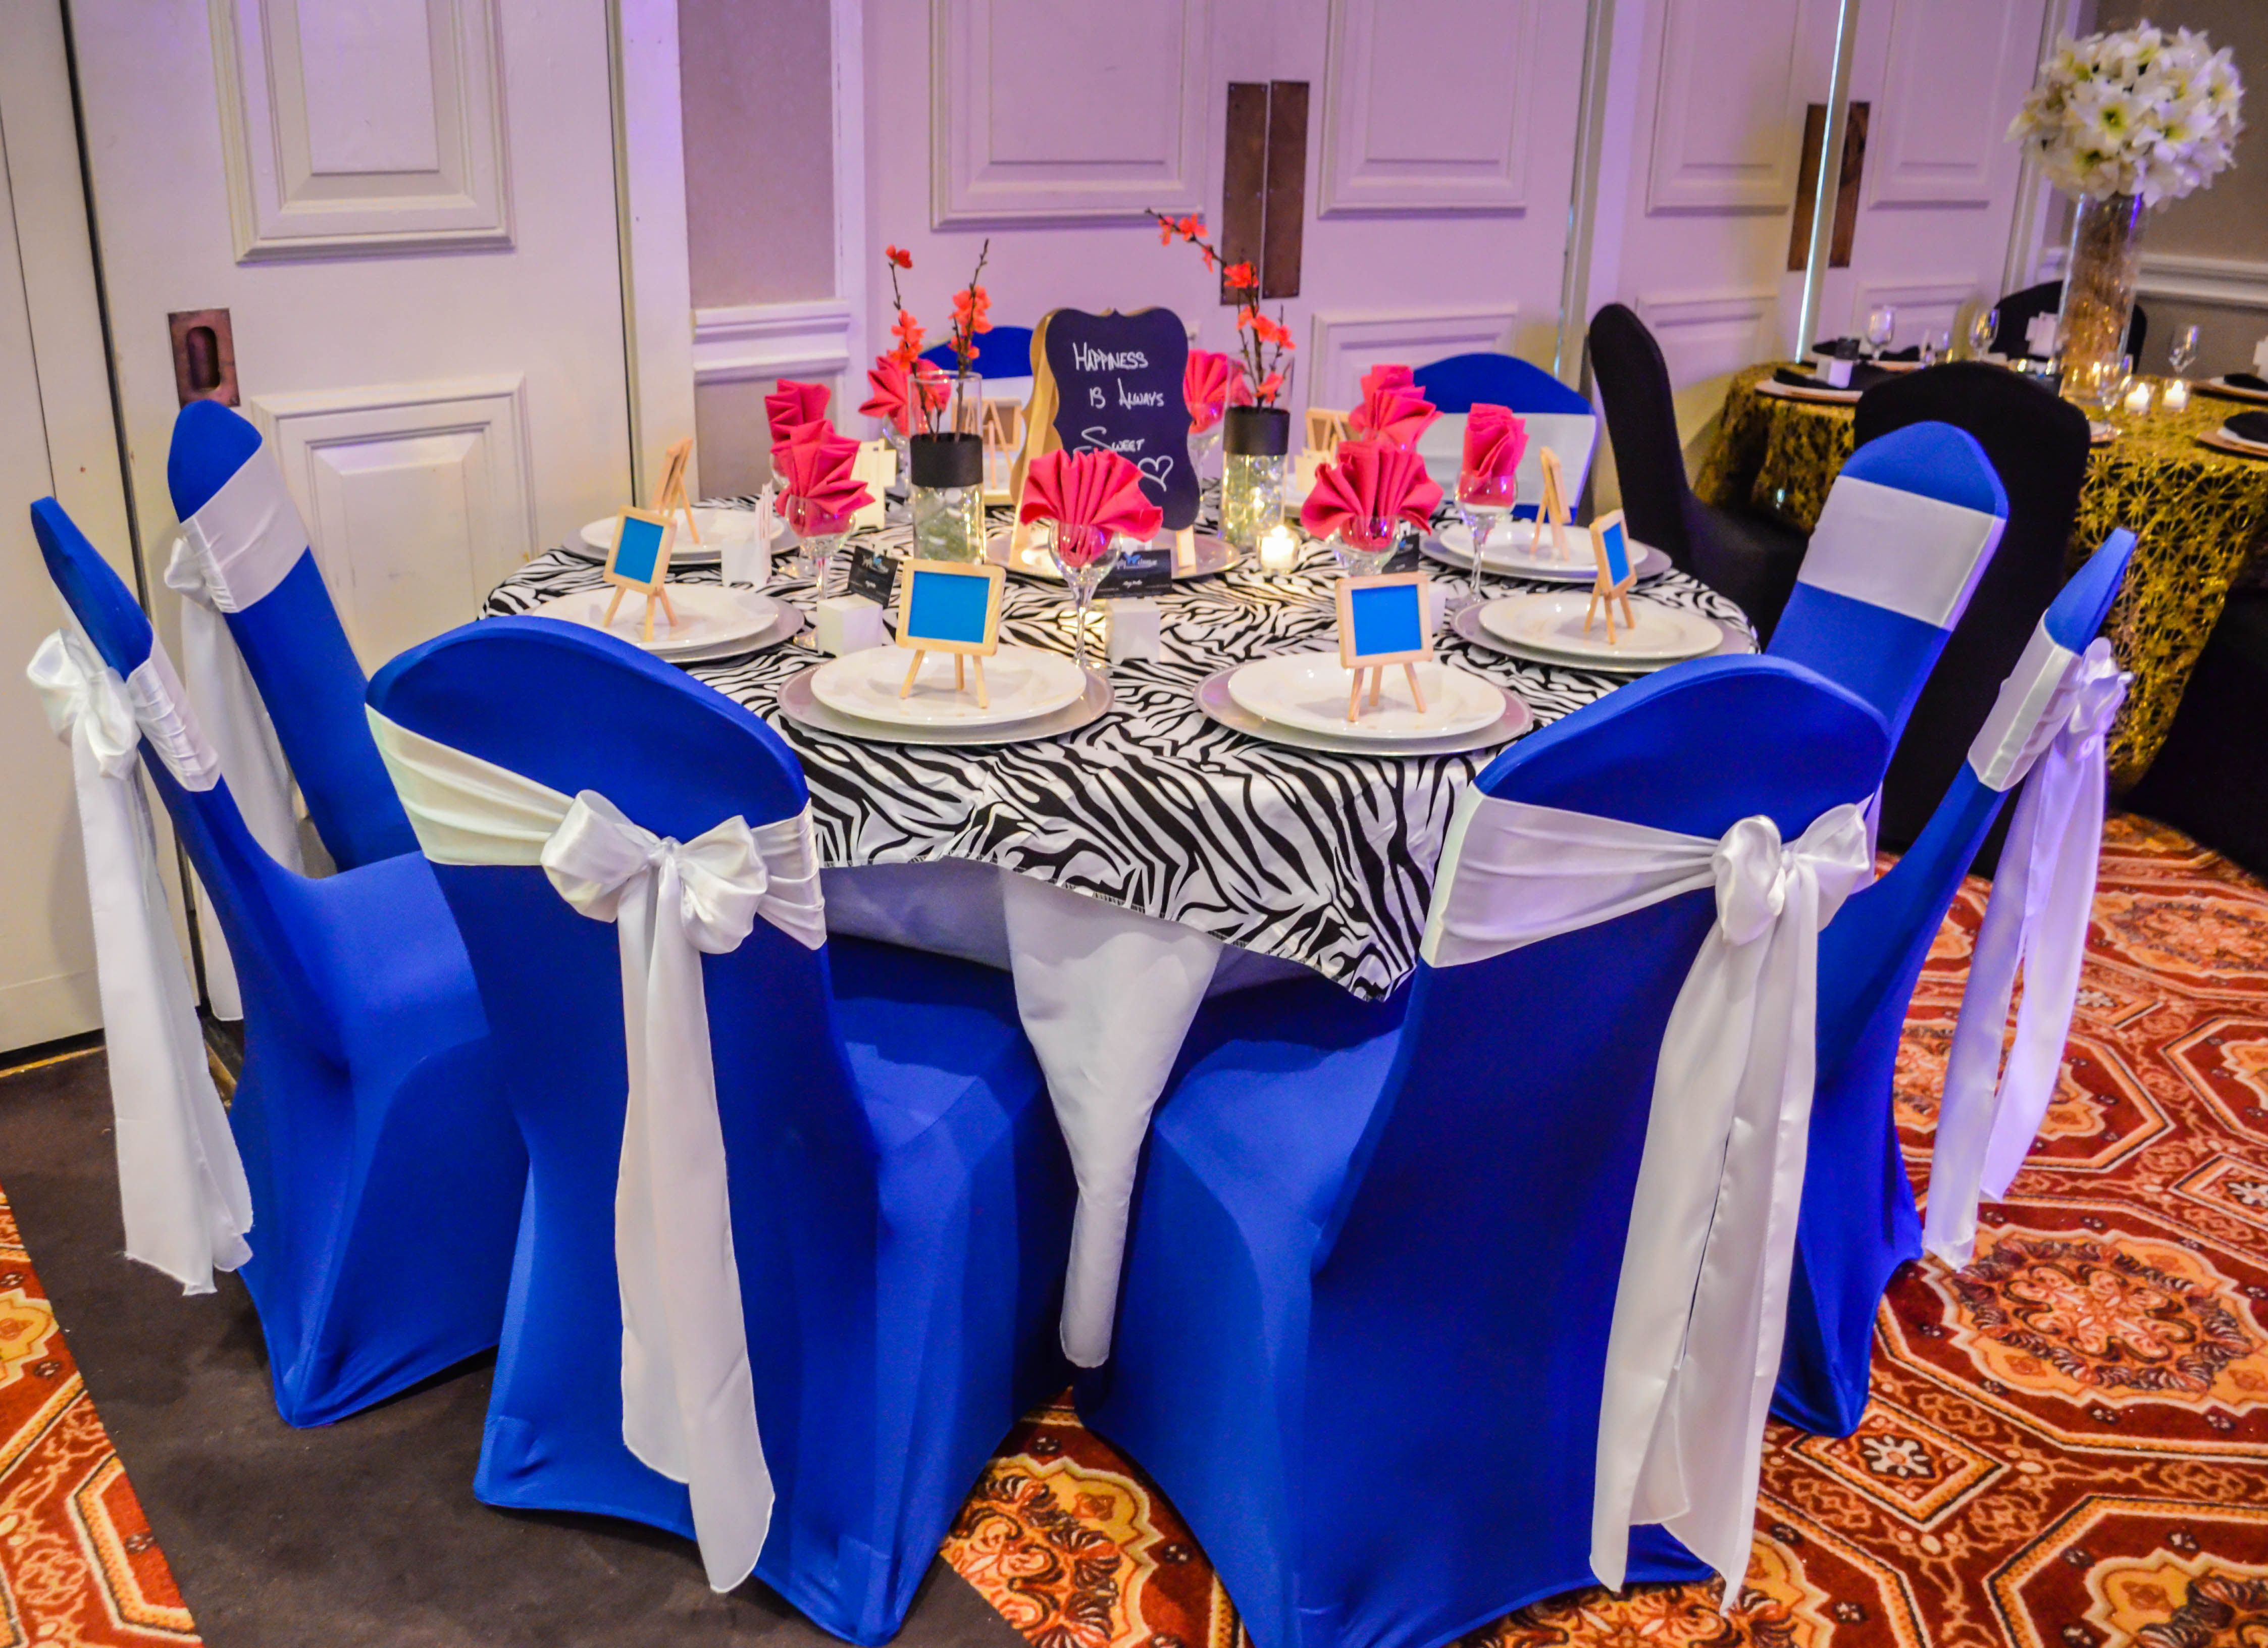 Royal Blue Spandex Chair Covers with White Satin Chair Sashes